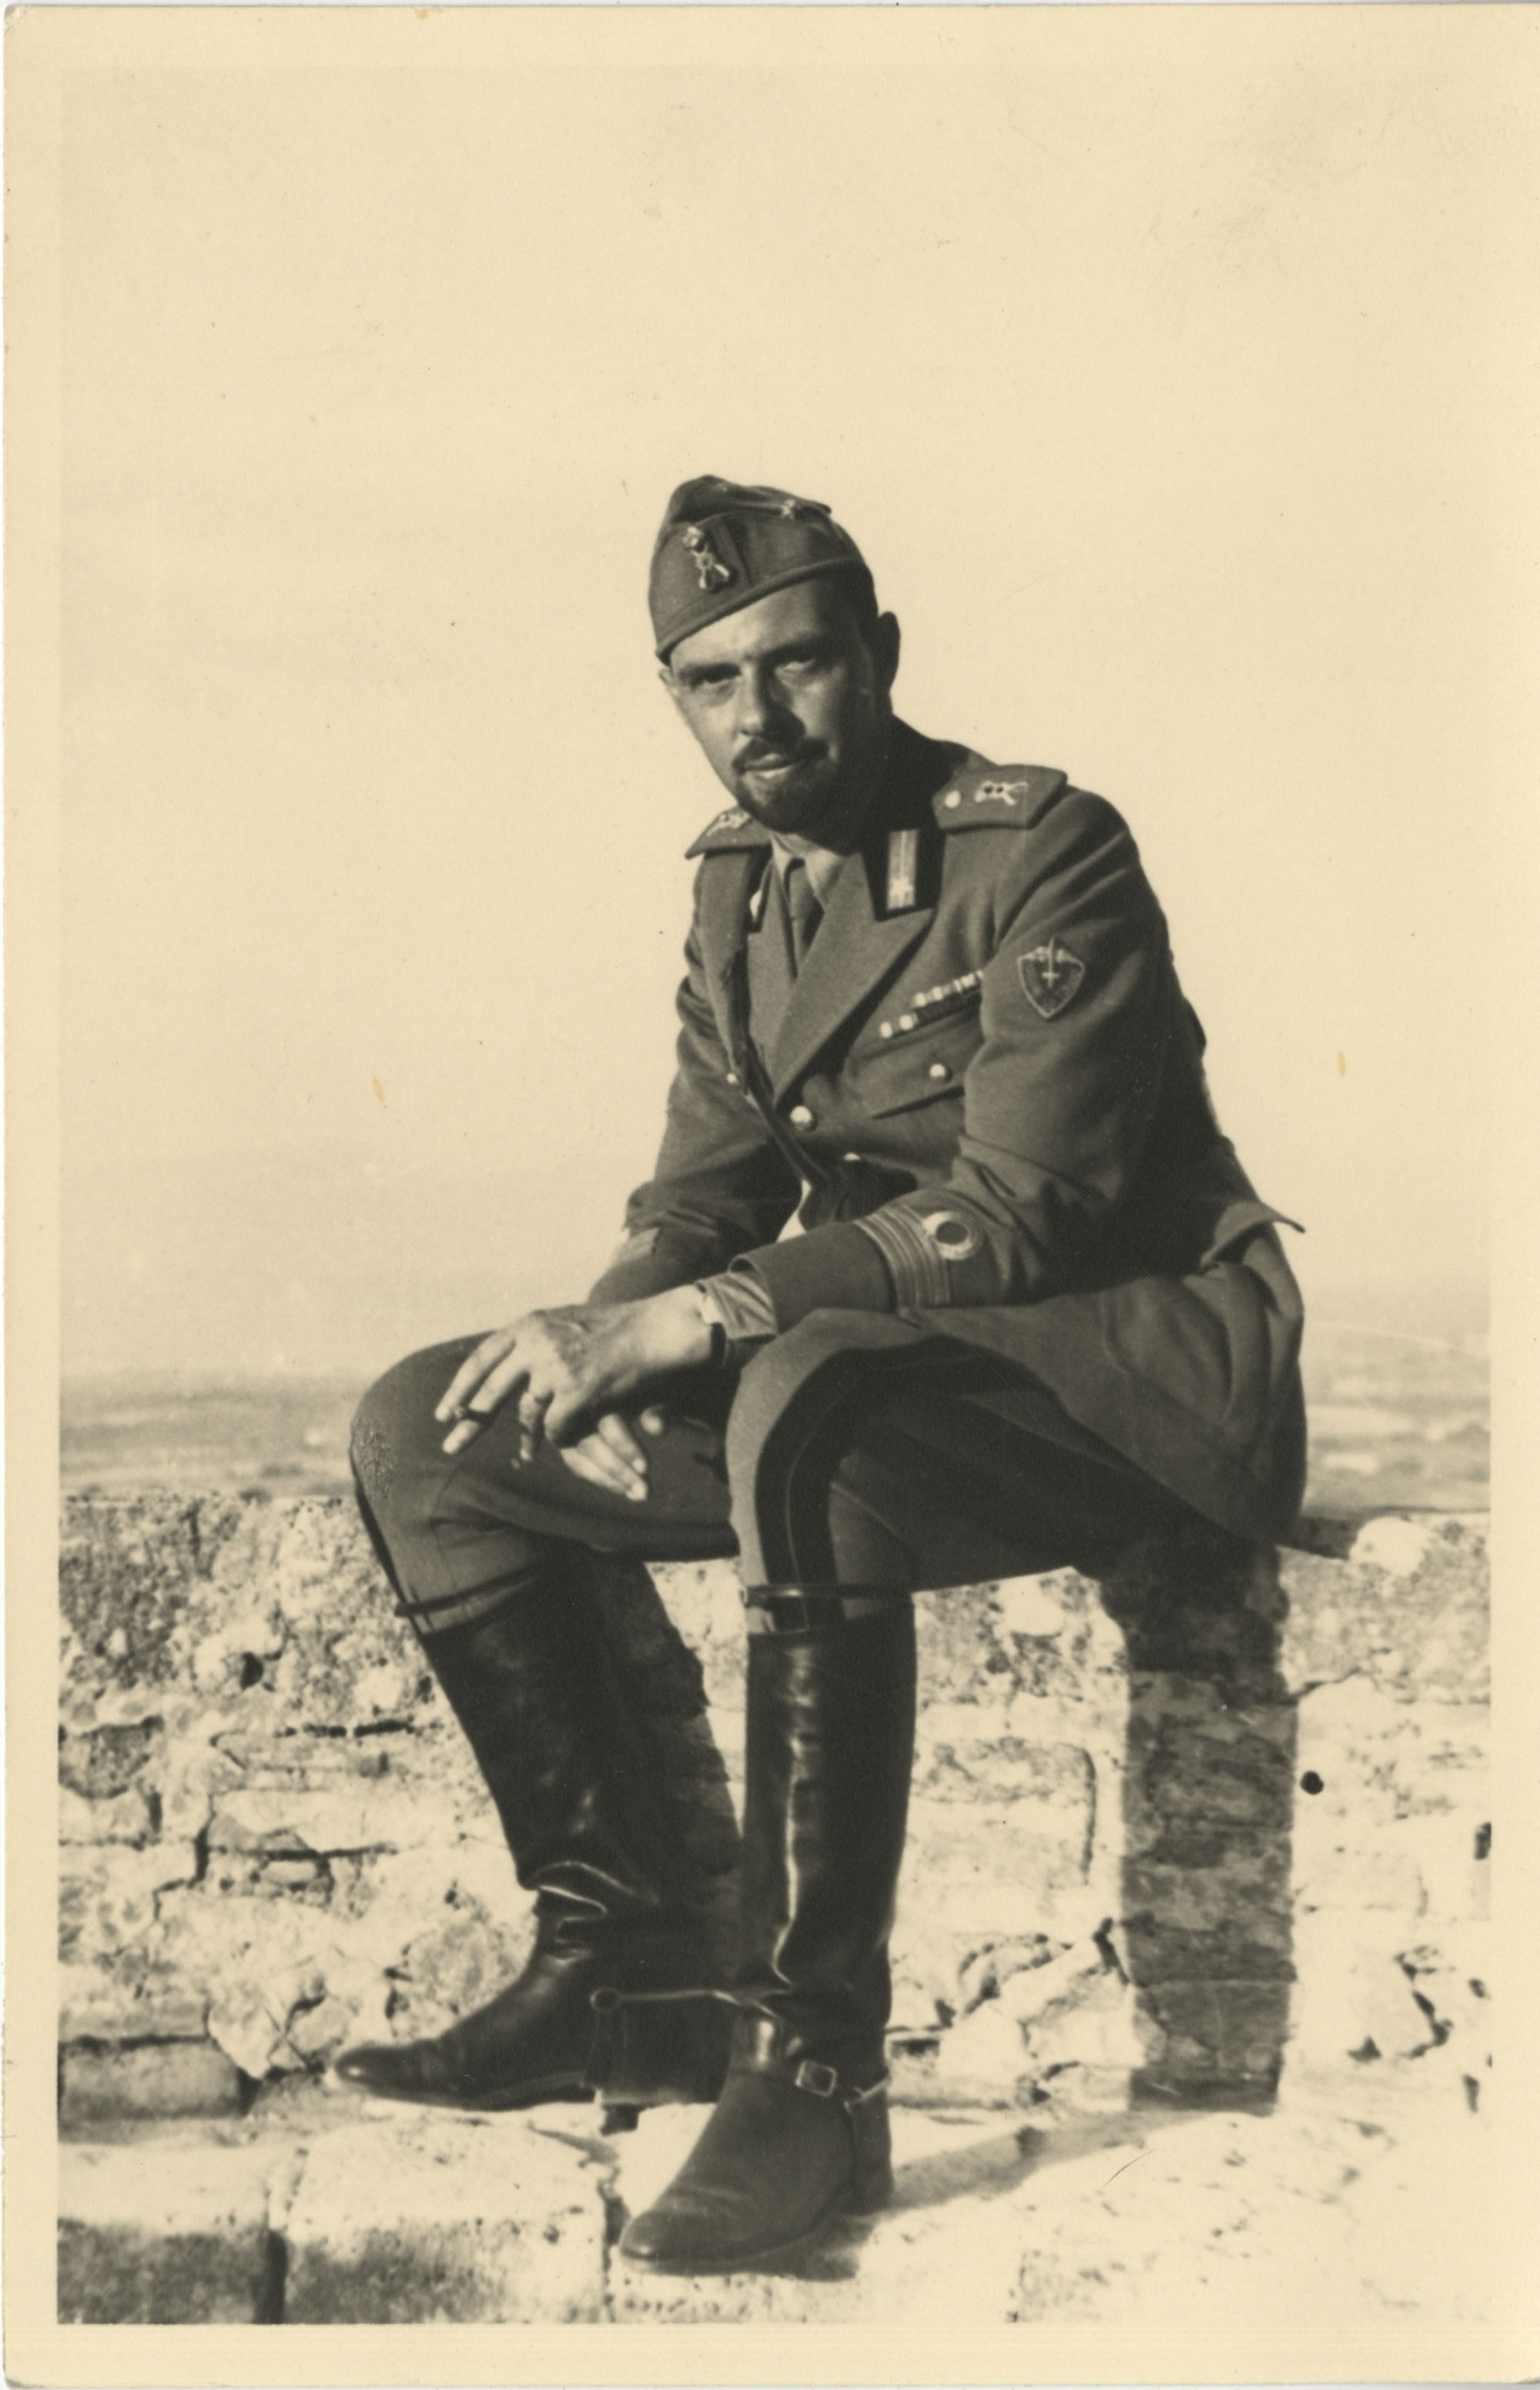 Unidentified man in military uniform, Photograph 1